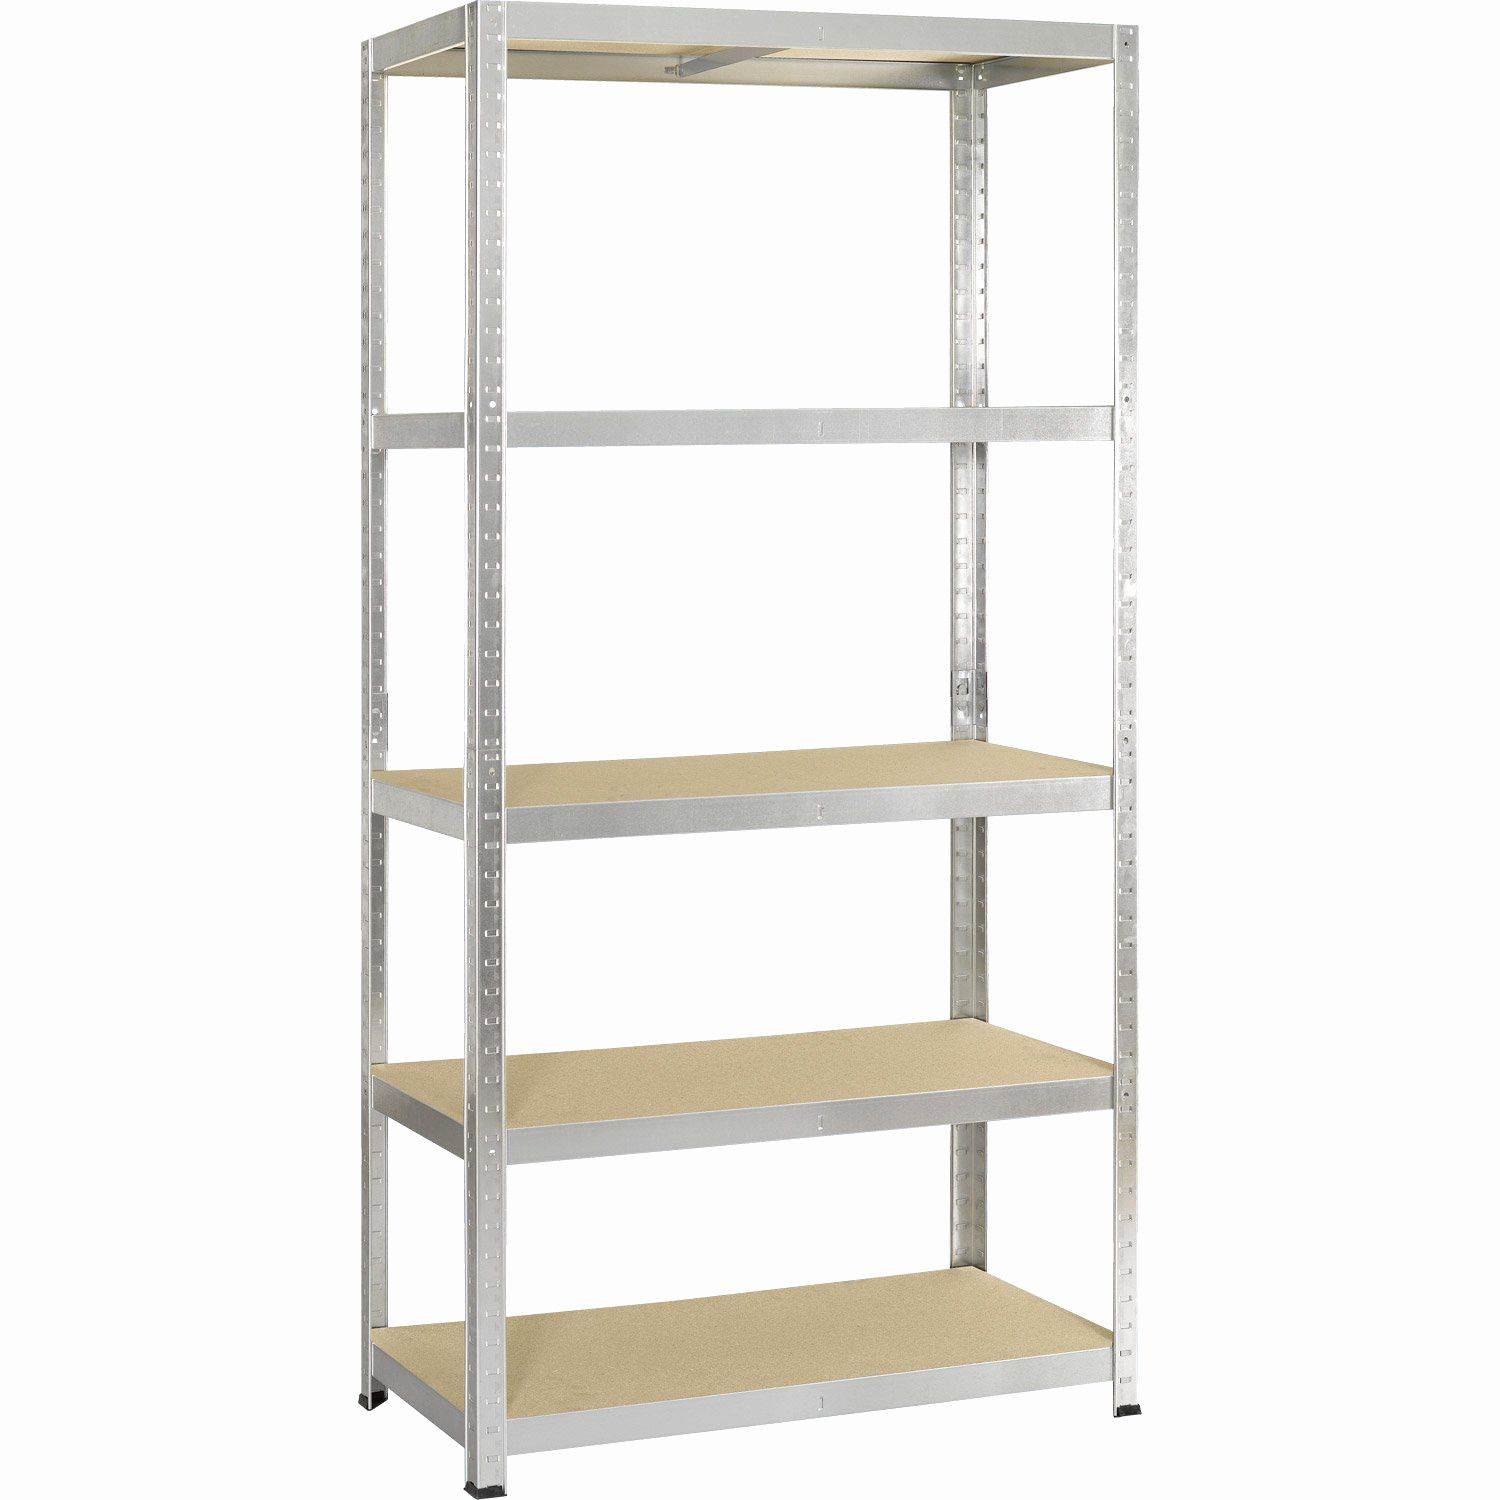 New Etagere Bois Metal Leroy Merlin Metal Shelving Units Metal Shelves Steel Shelving Unit